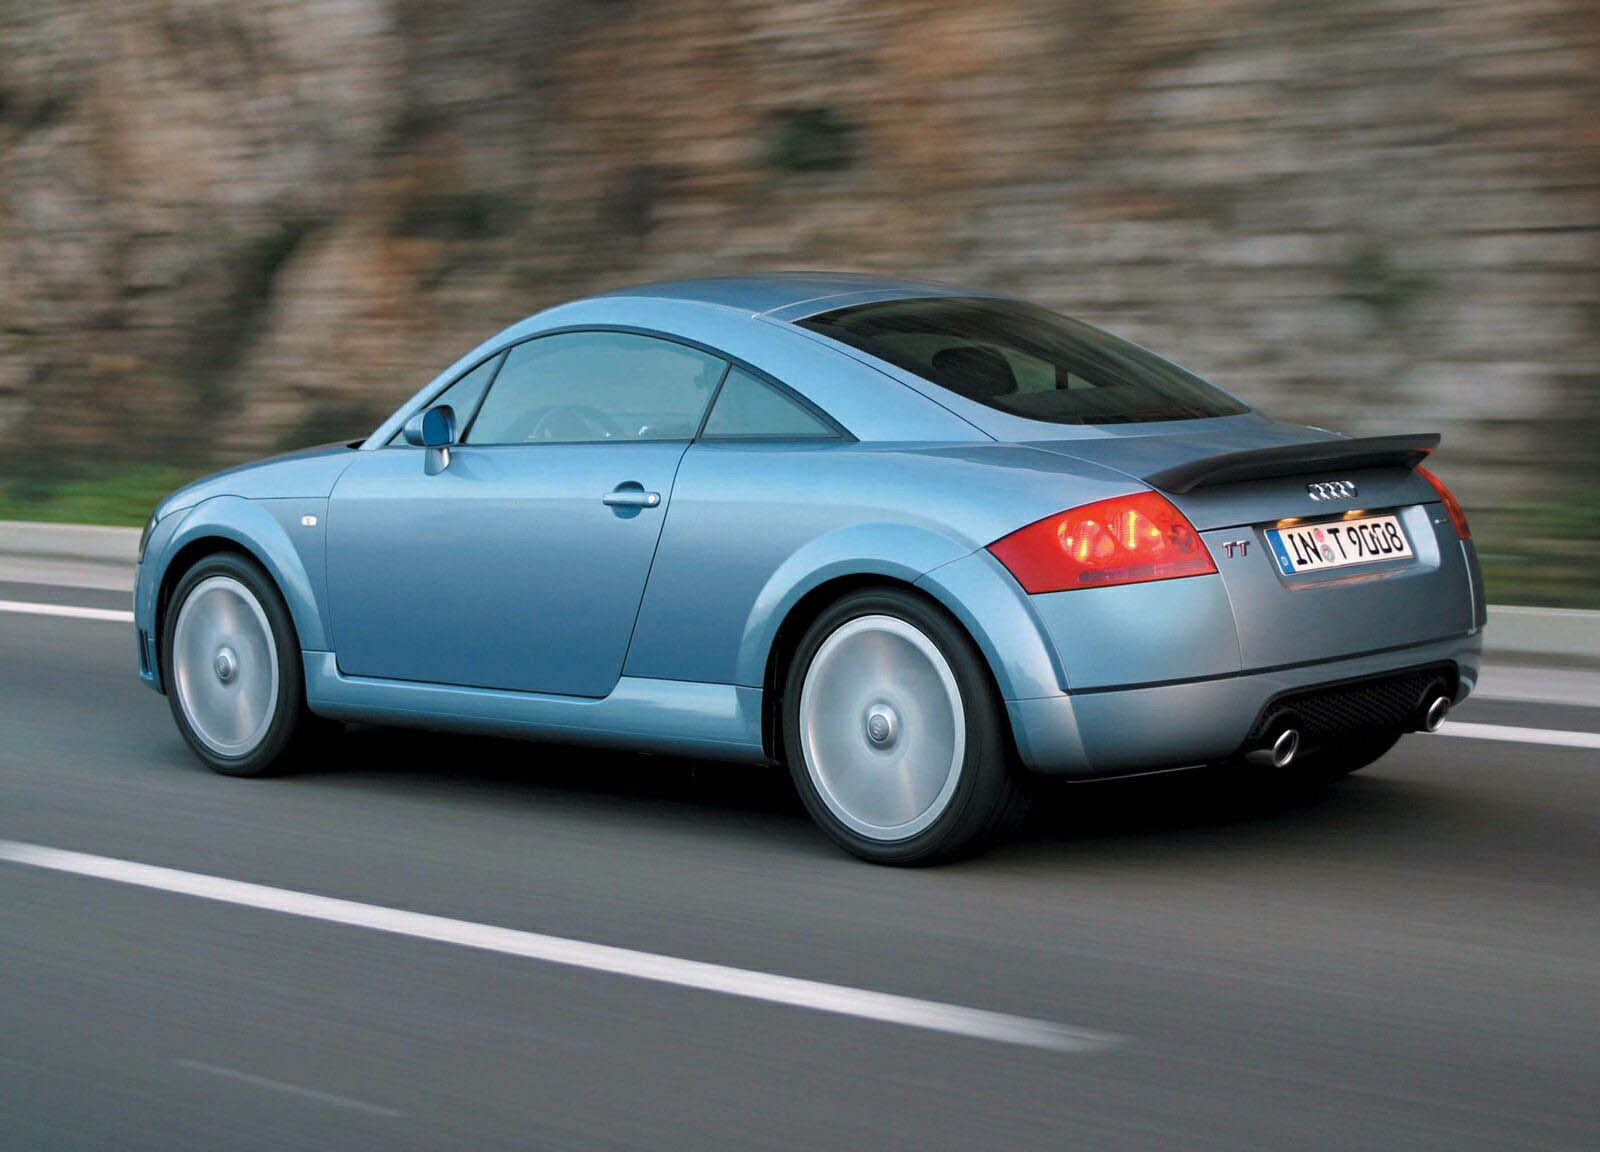 2004 audi tt coupe picture 1988 car review top speed. Black Bedroom Furniture Sets. Home Design Ideas